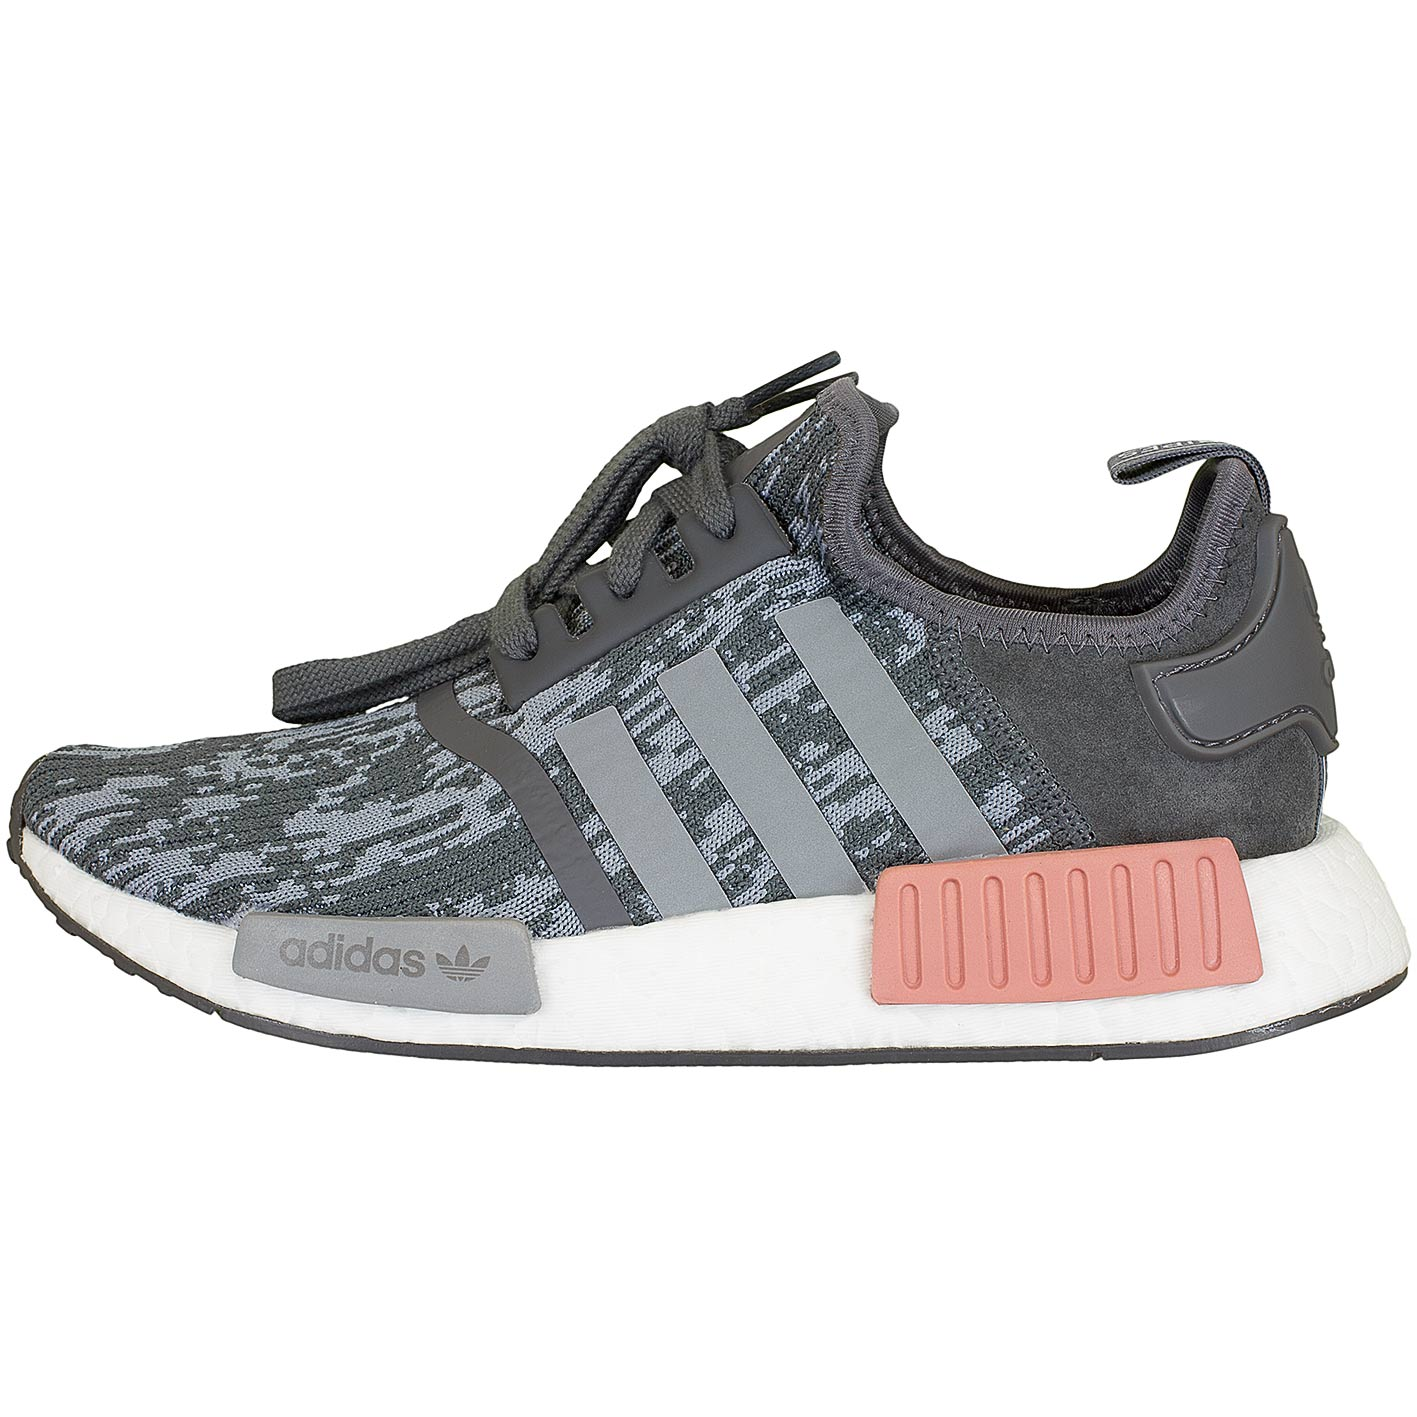 sneakers authentic quality amazon ☆ Adidas Originals Damen Sneaker NMD R1 grau/pink - hier ...